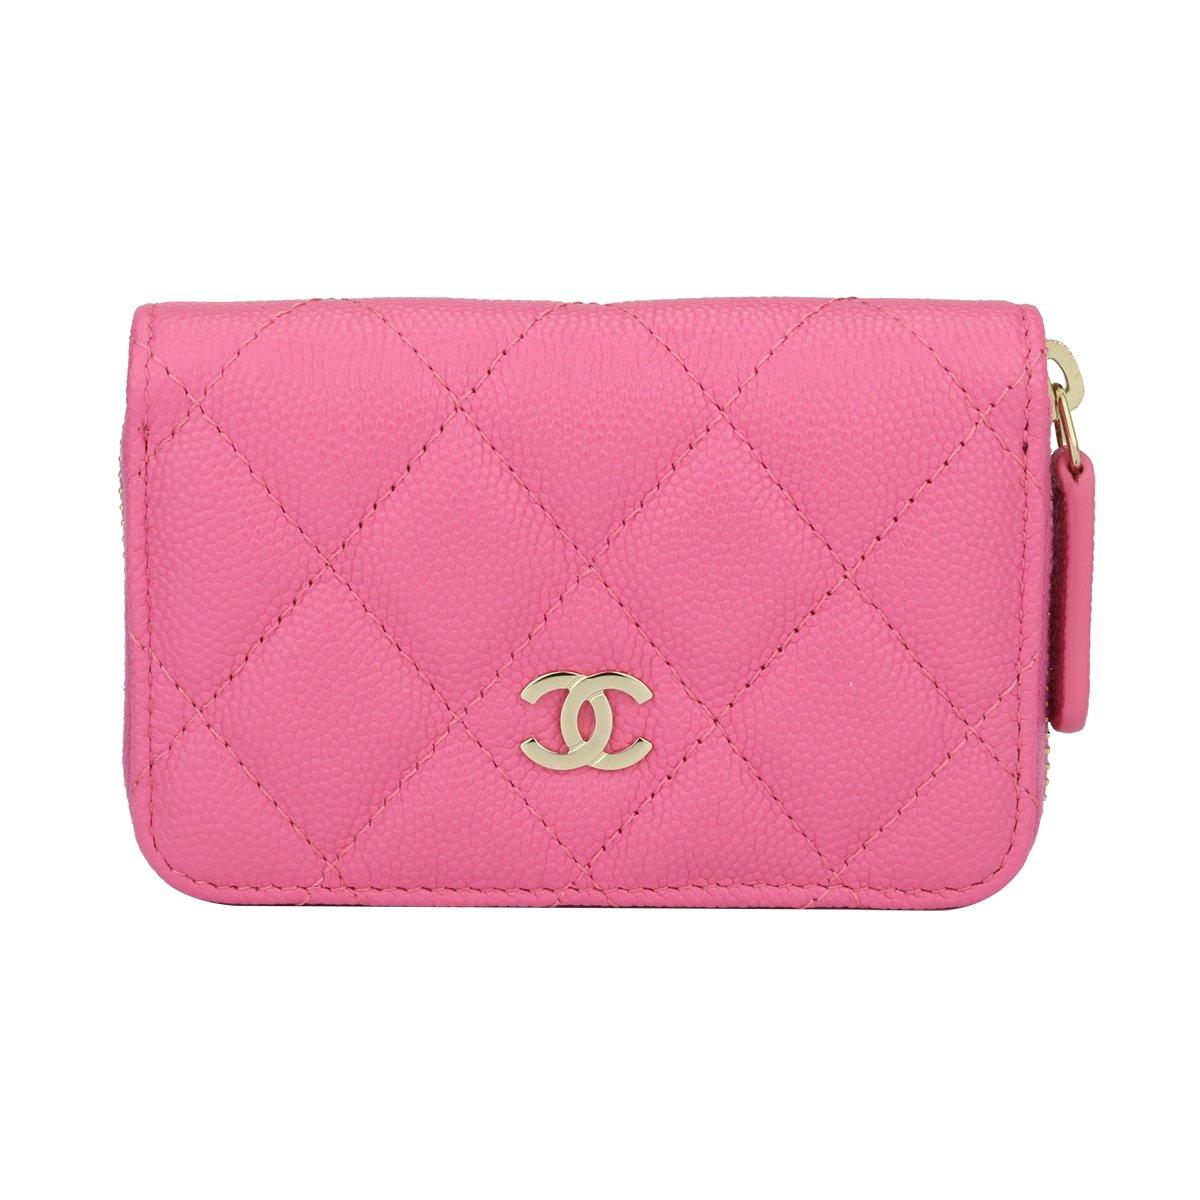 d7edfb27910a51 Chanel Classic Wallets - 29 For Sale on 1stdibs